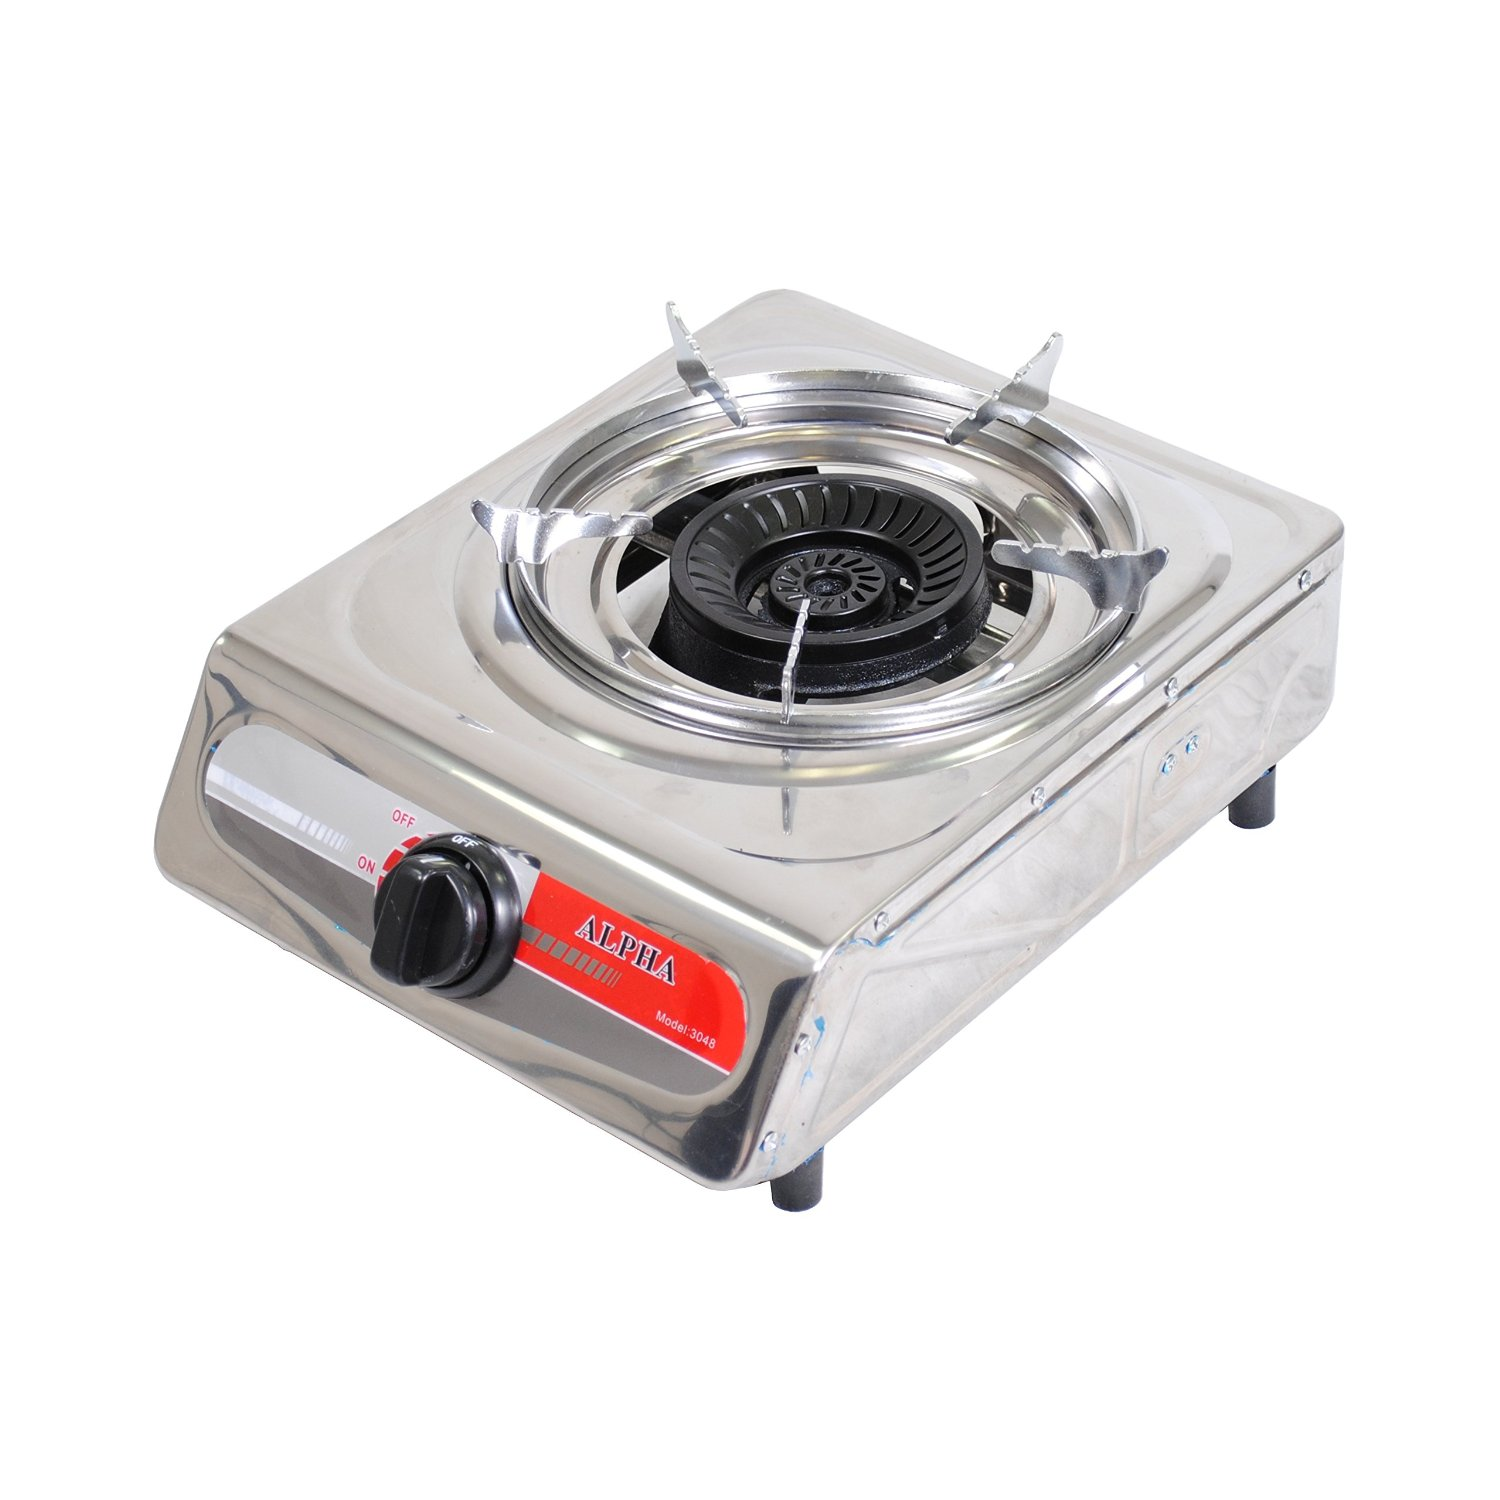 Alpha Portable Propane One Burner Gas Stove